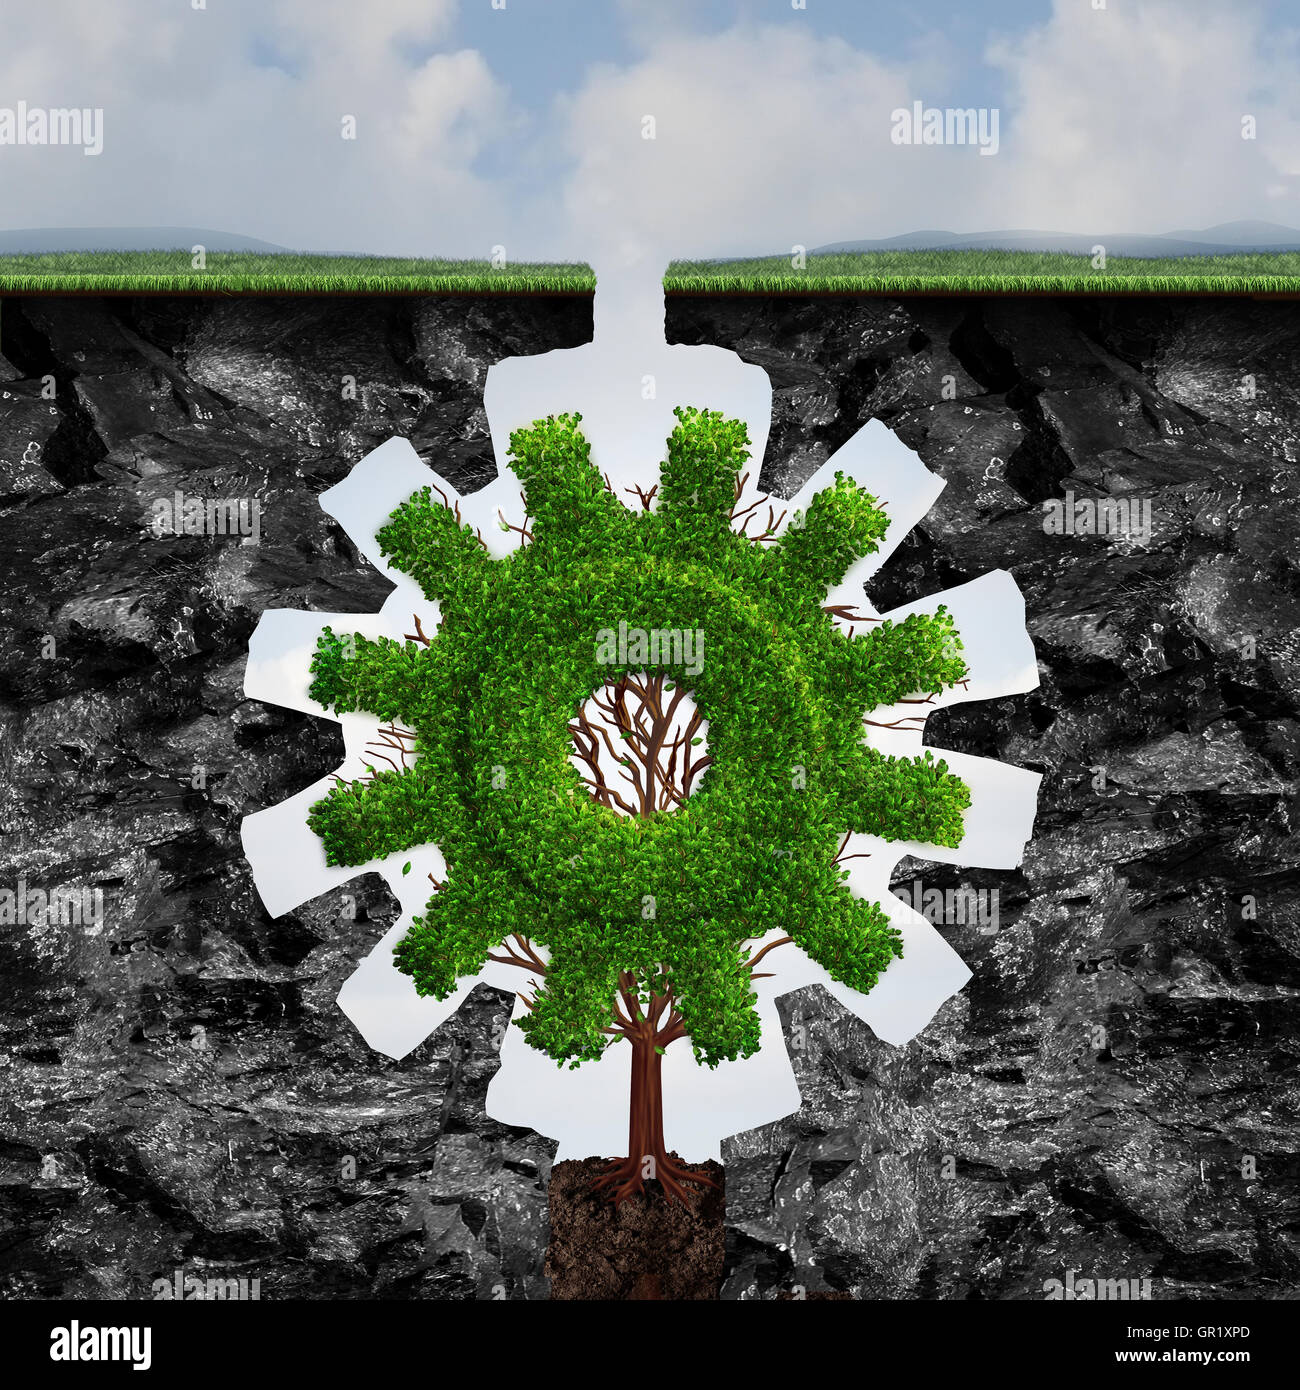 Custom business concept as a tree shaped as a gear or cog growing and adapting between two cliffs with a perfect - Stock Image